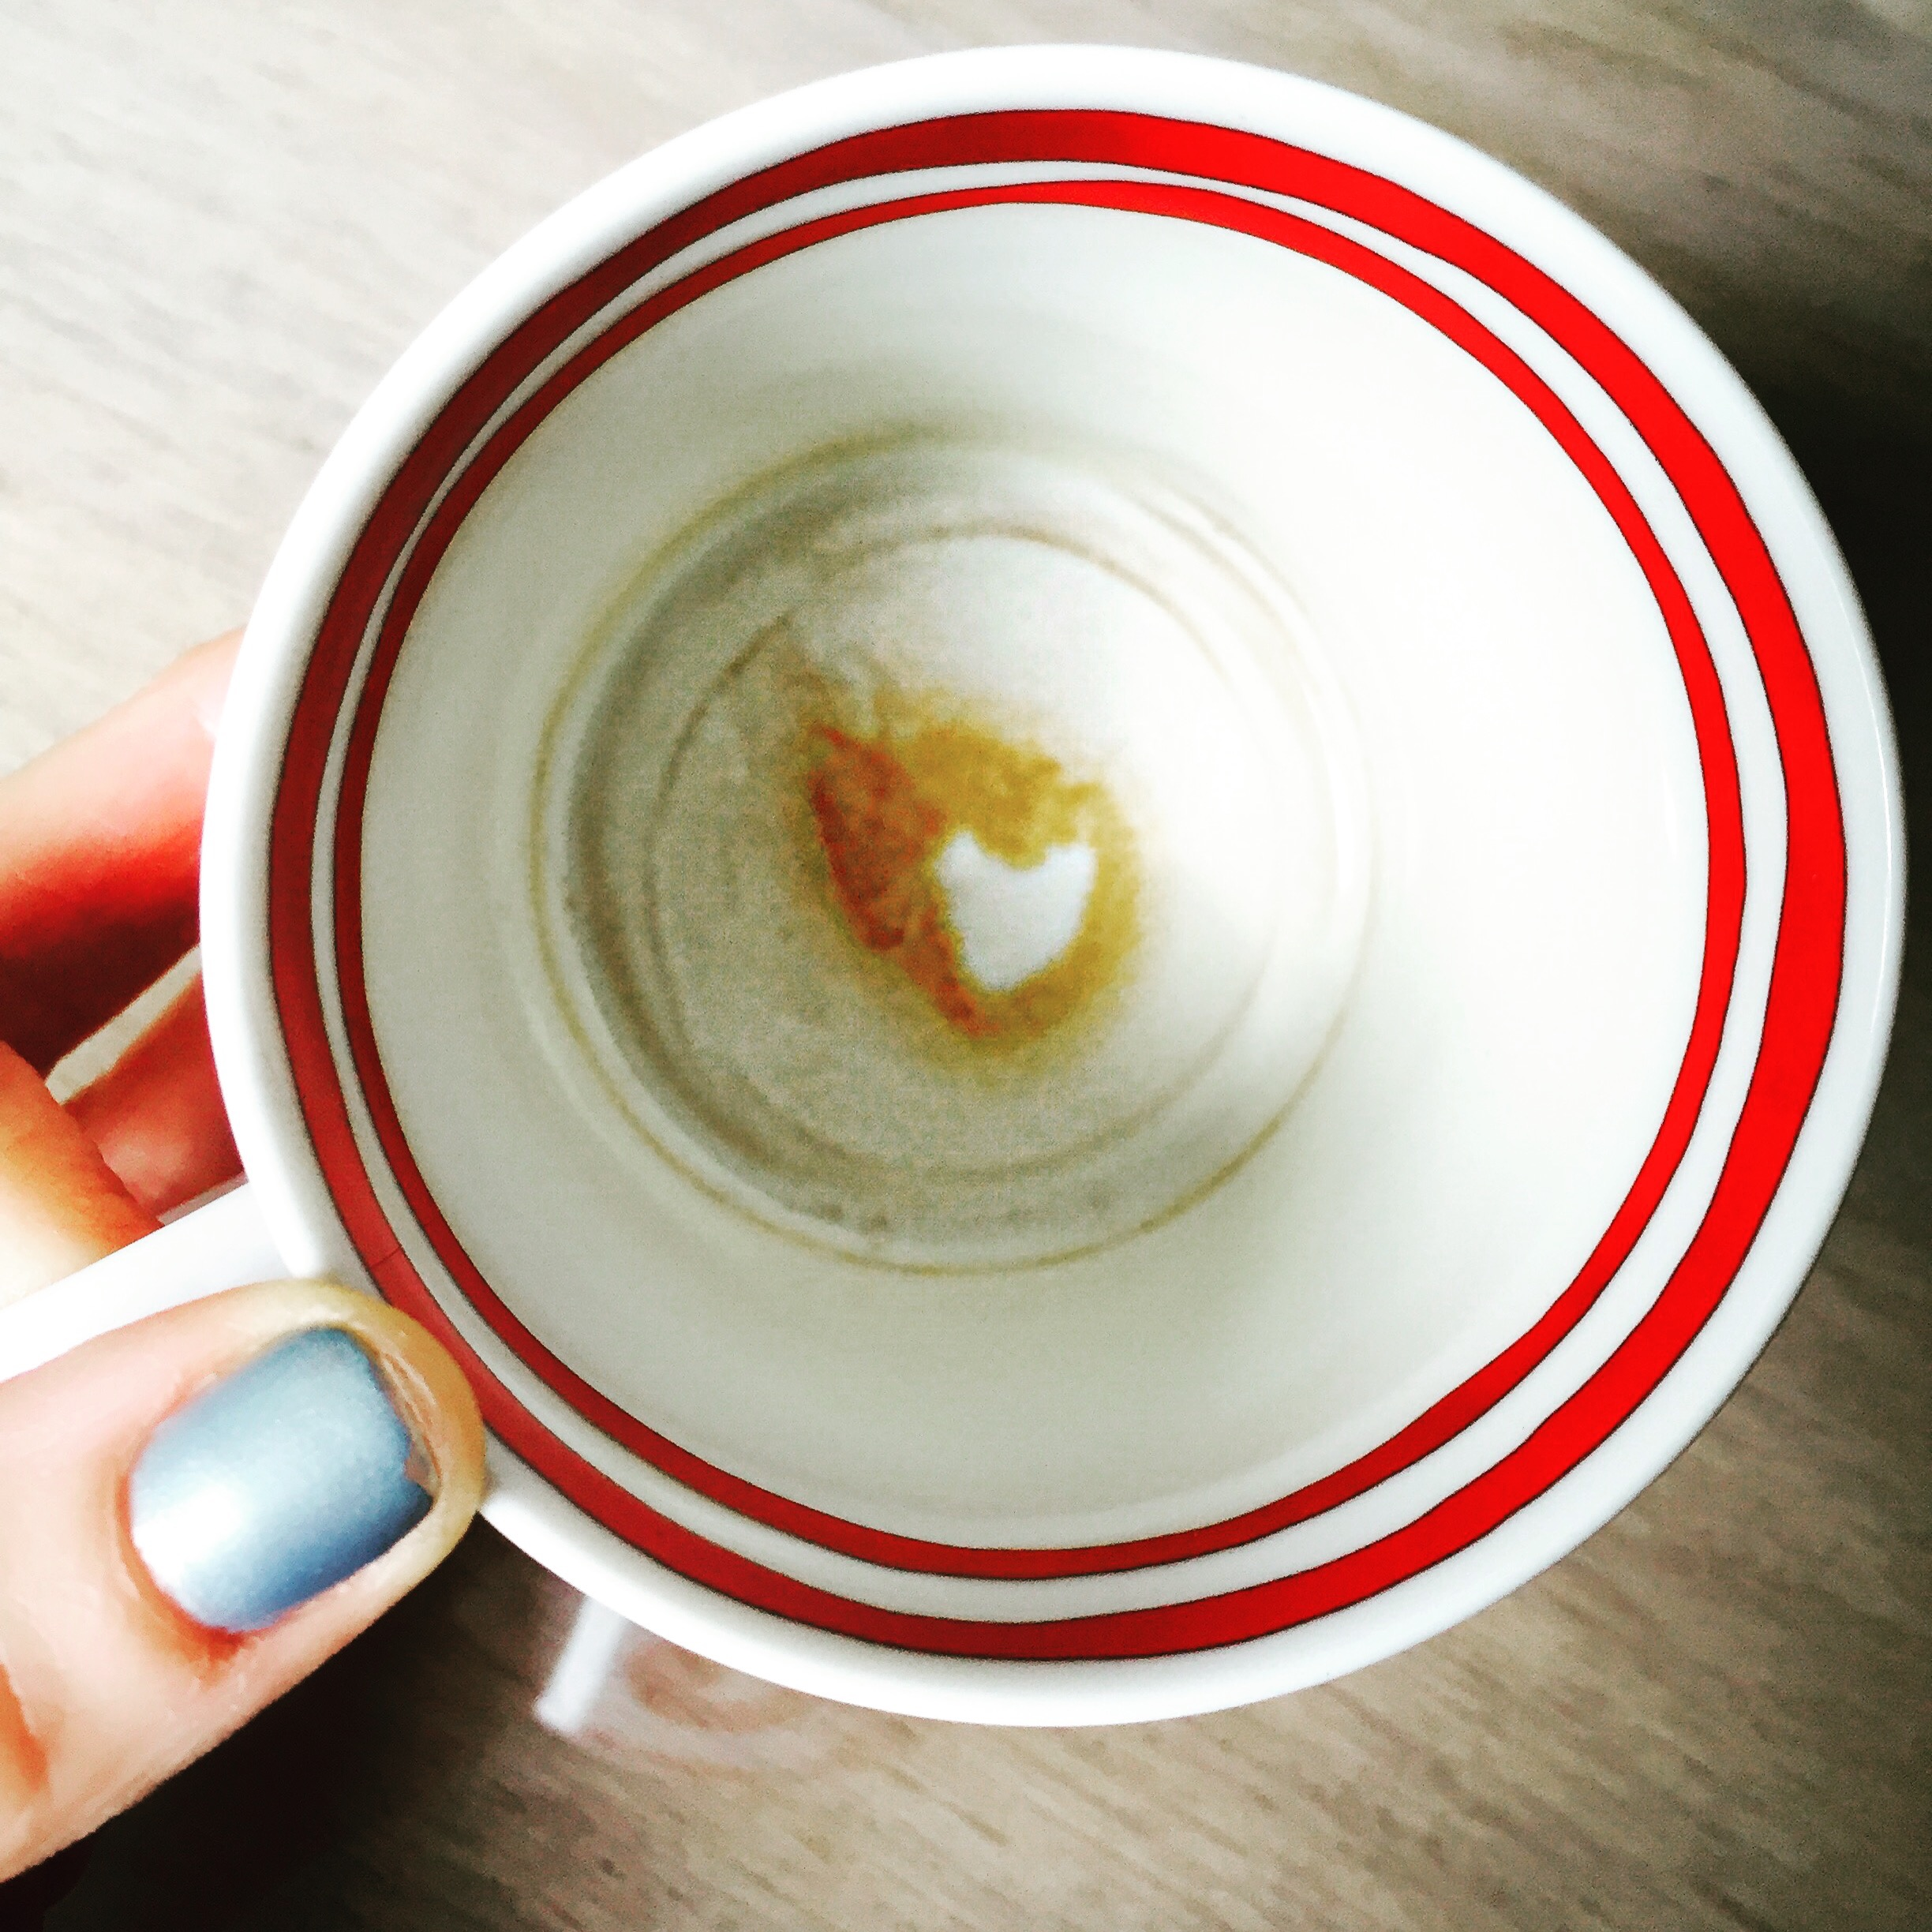 Saw this heart in the bottom of my coffee cup. Pretty amazing.